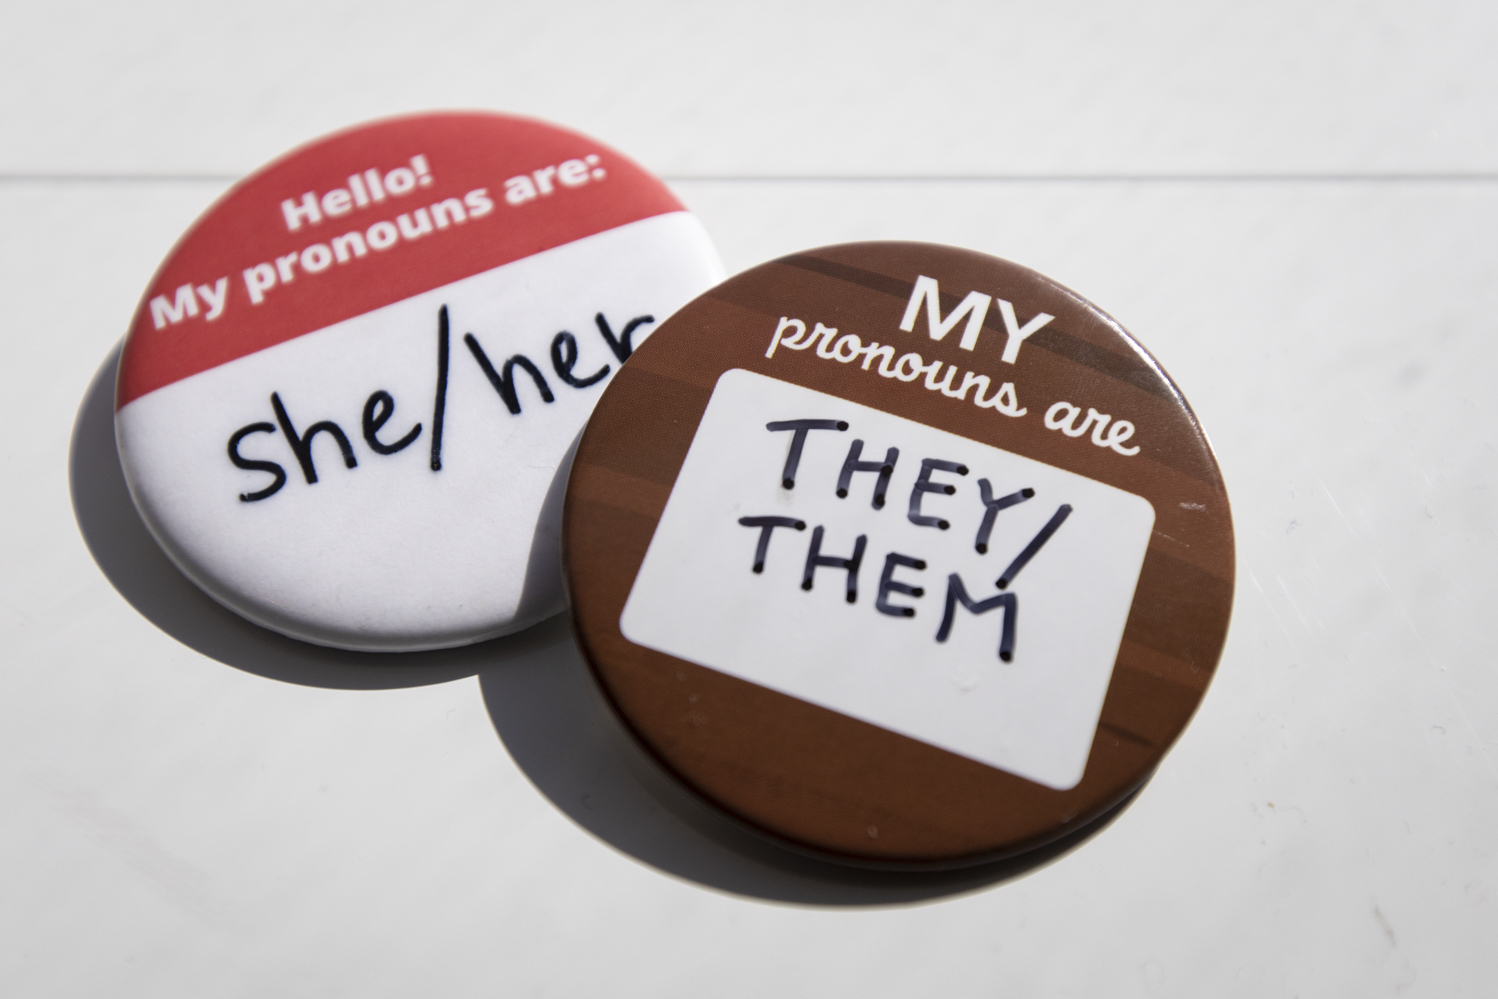 5 Ways To Make The Office More Welcoming For People Of All Gender Identities